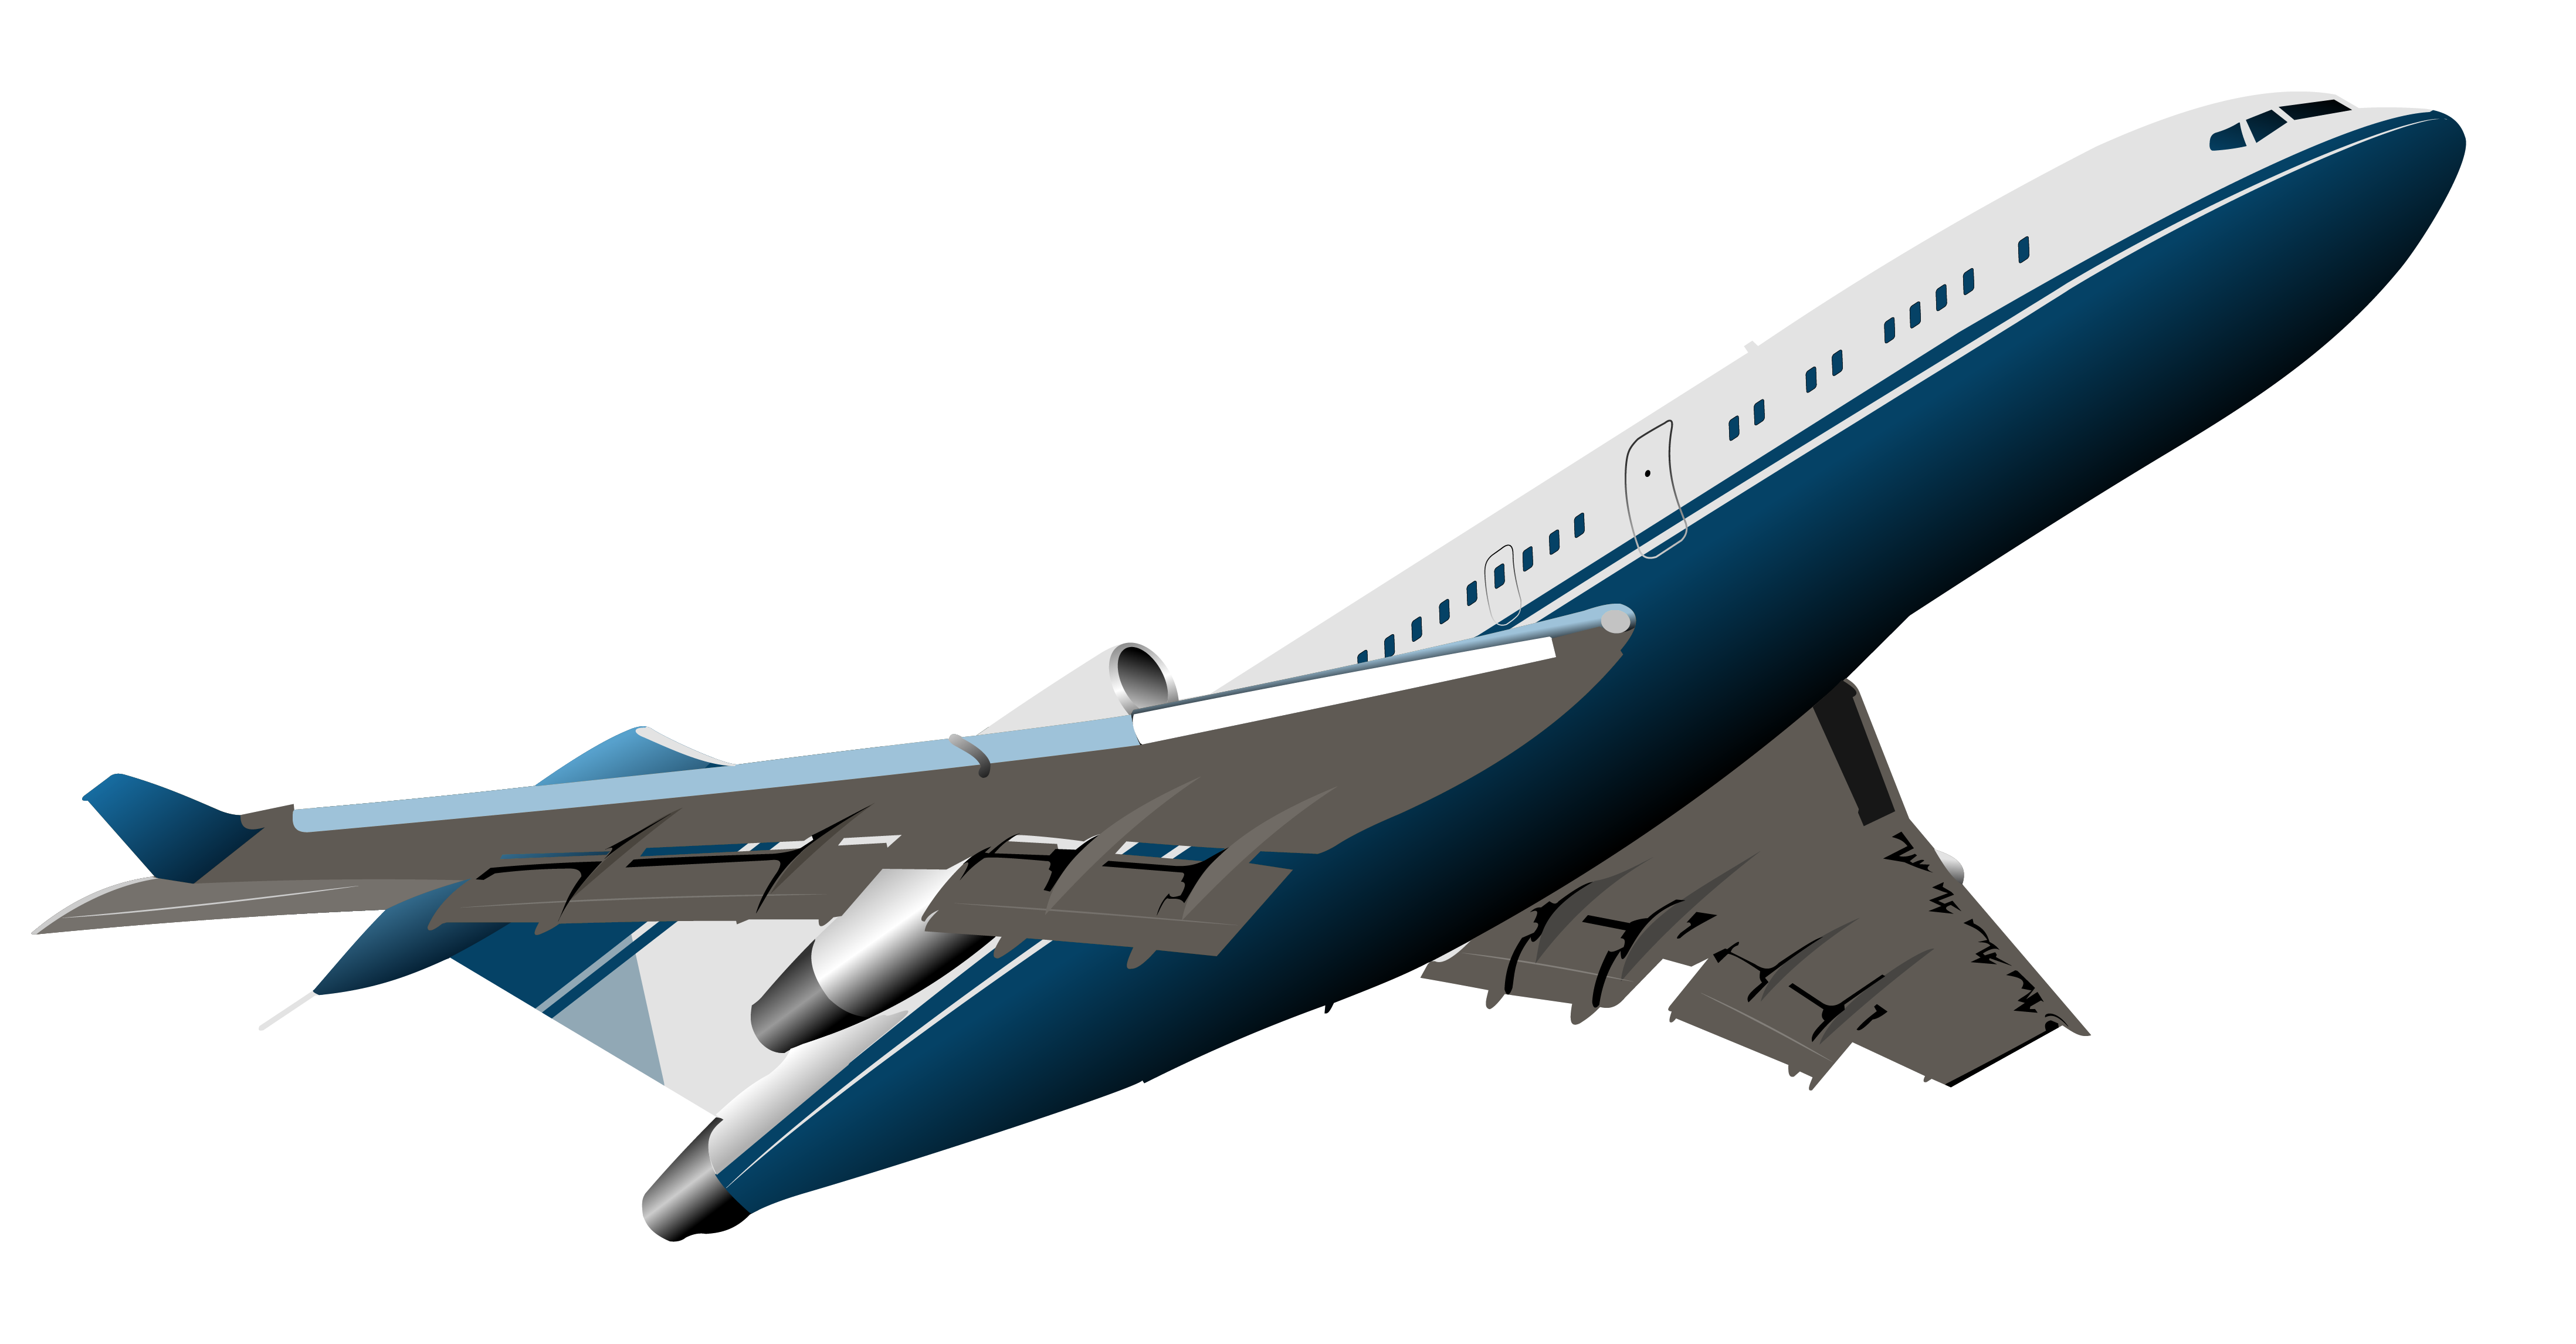 Airplane full hd clipart - Plane HD PNG